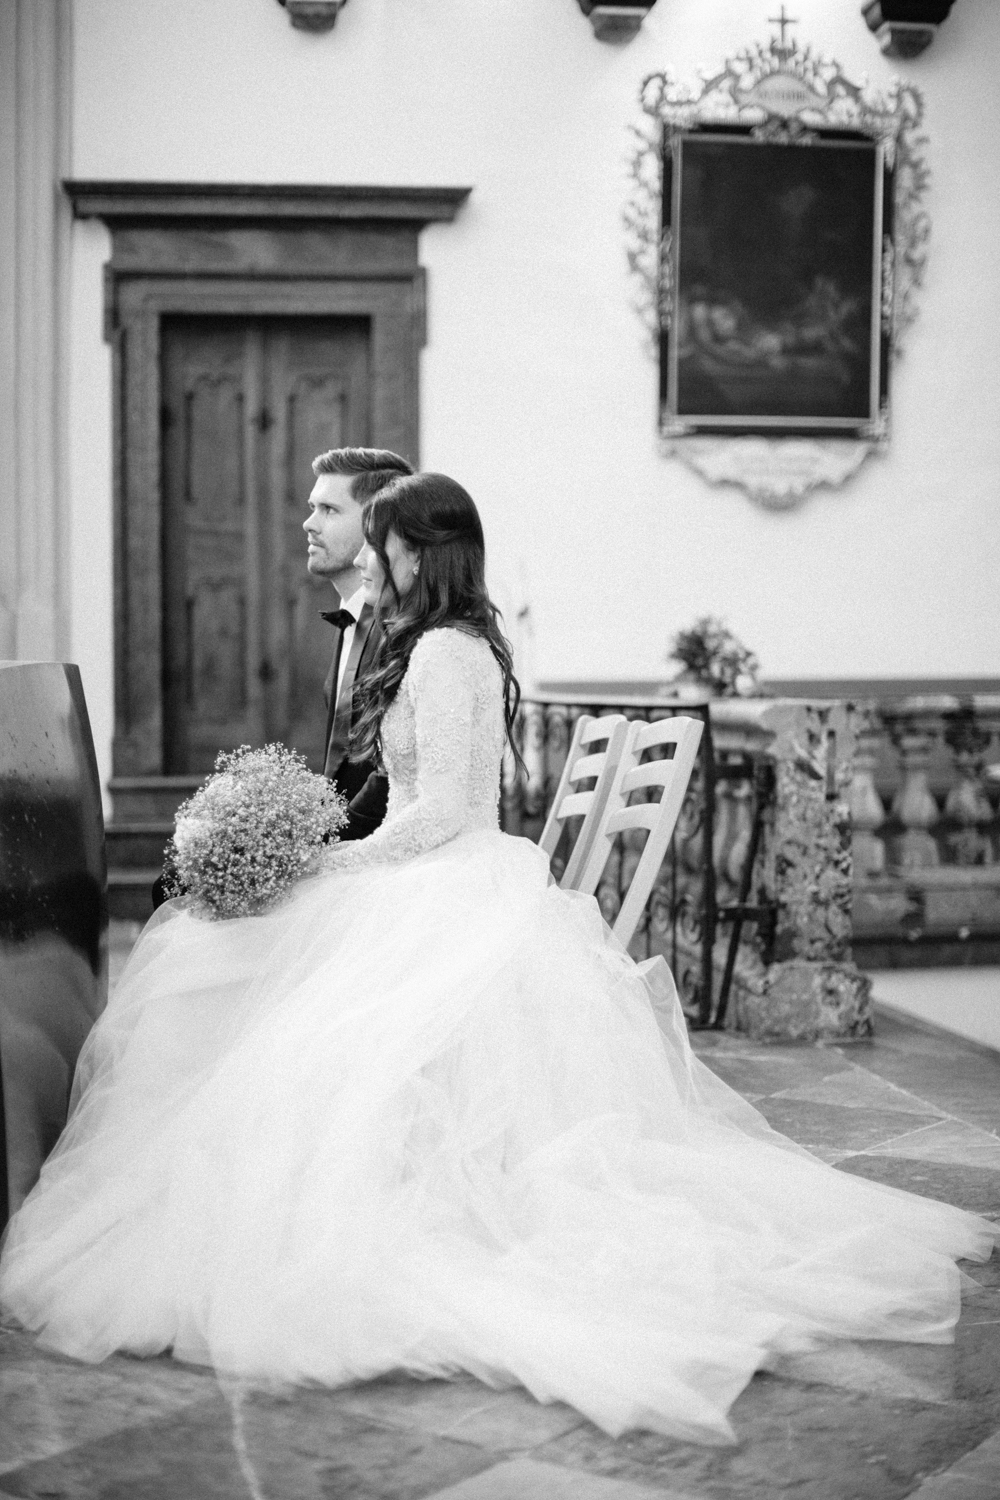 lake_como_wedding_photographer_nikol_bodnarova_109.JPG